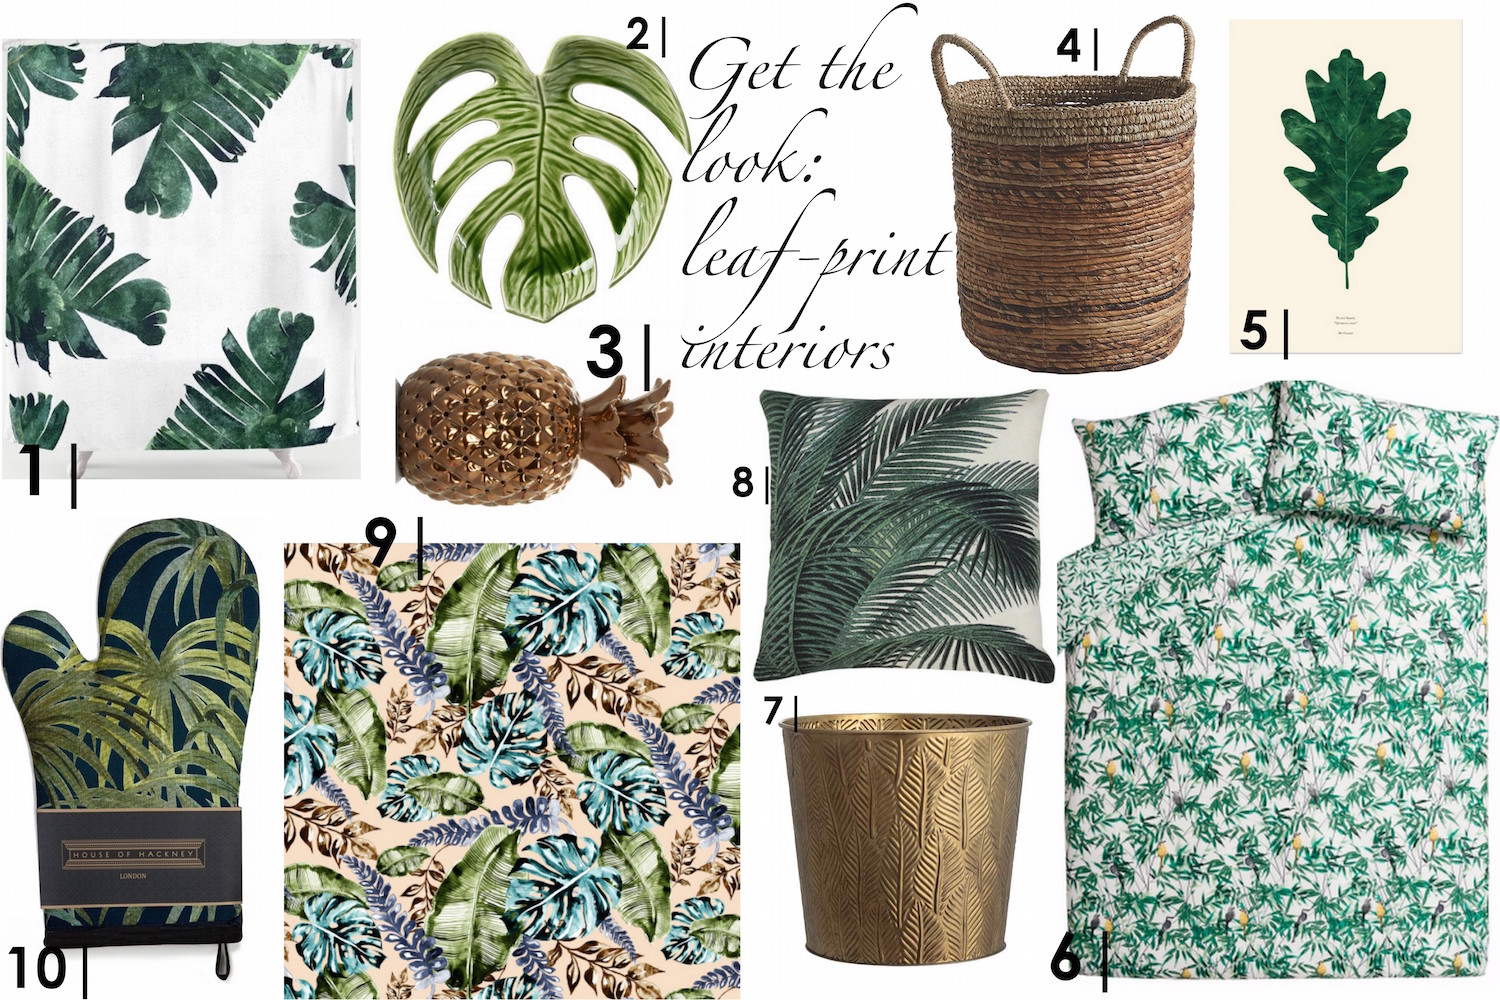 Get the Look: Leaf-Print Interiors | Wolf & Stag